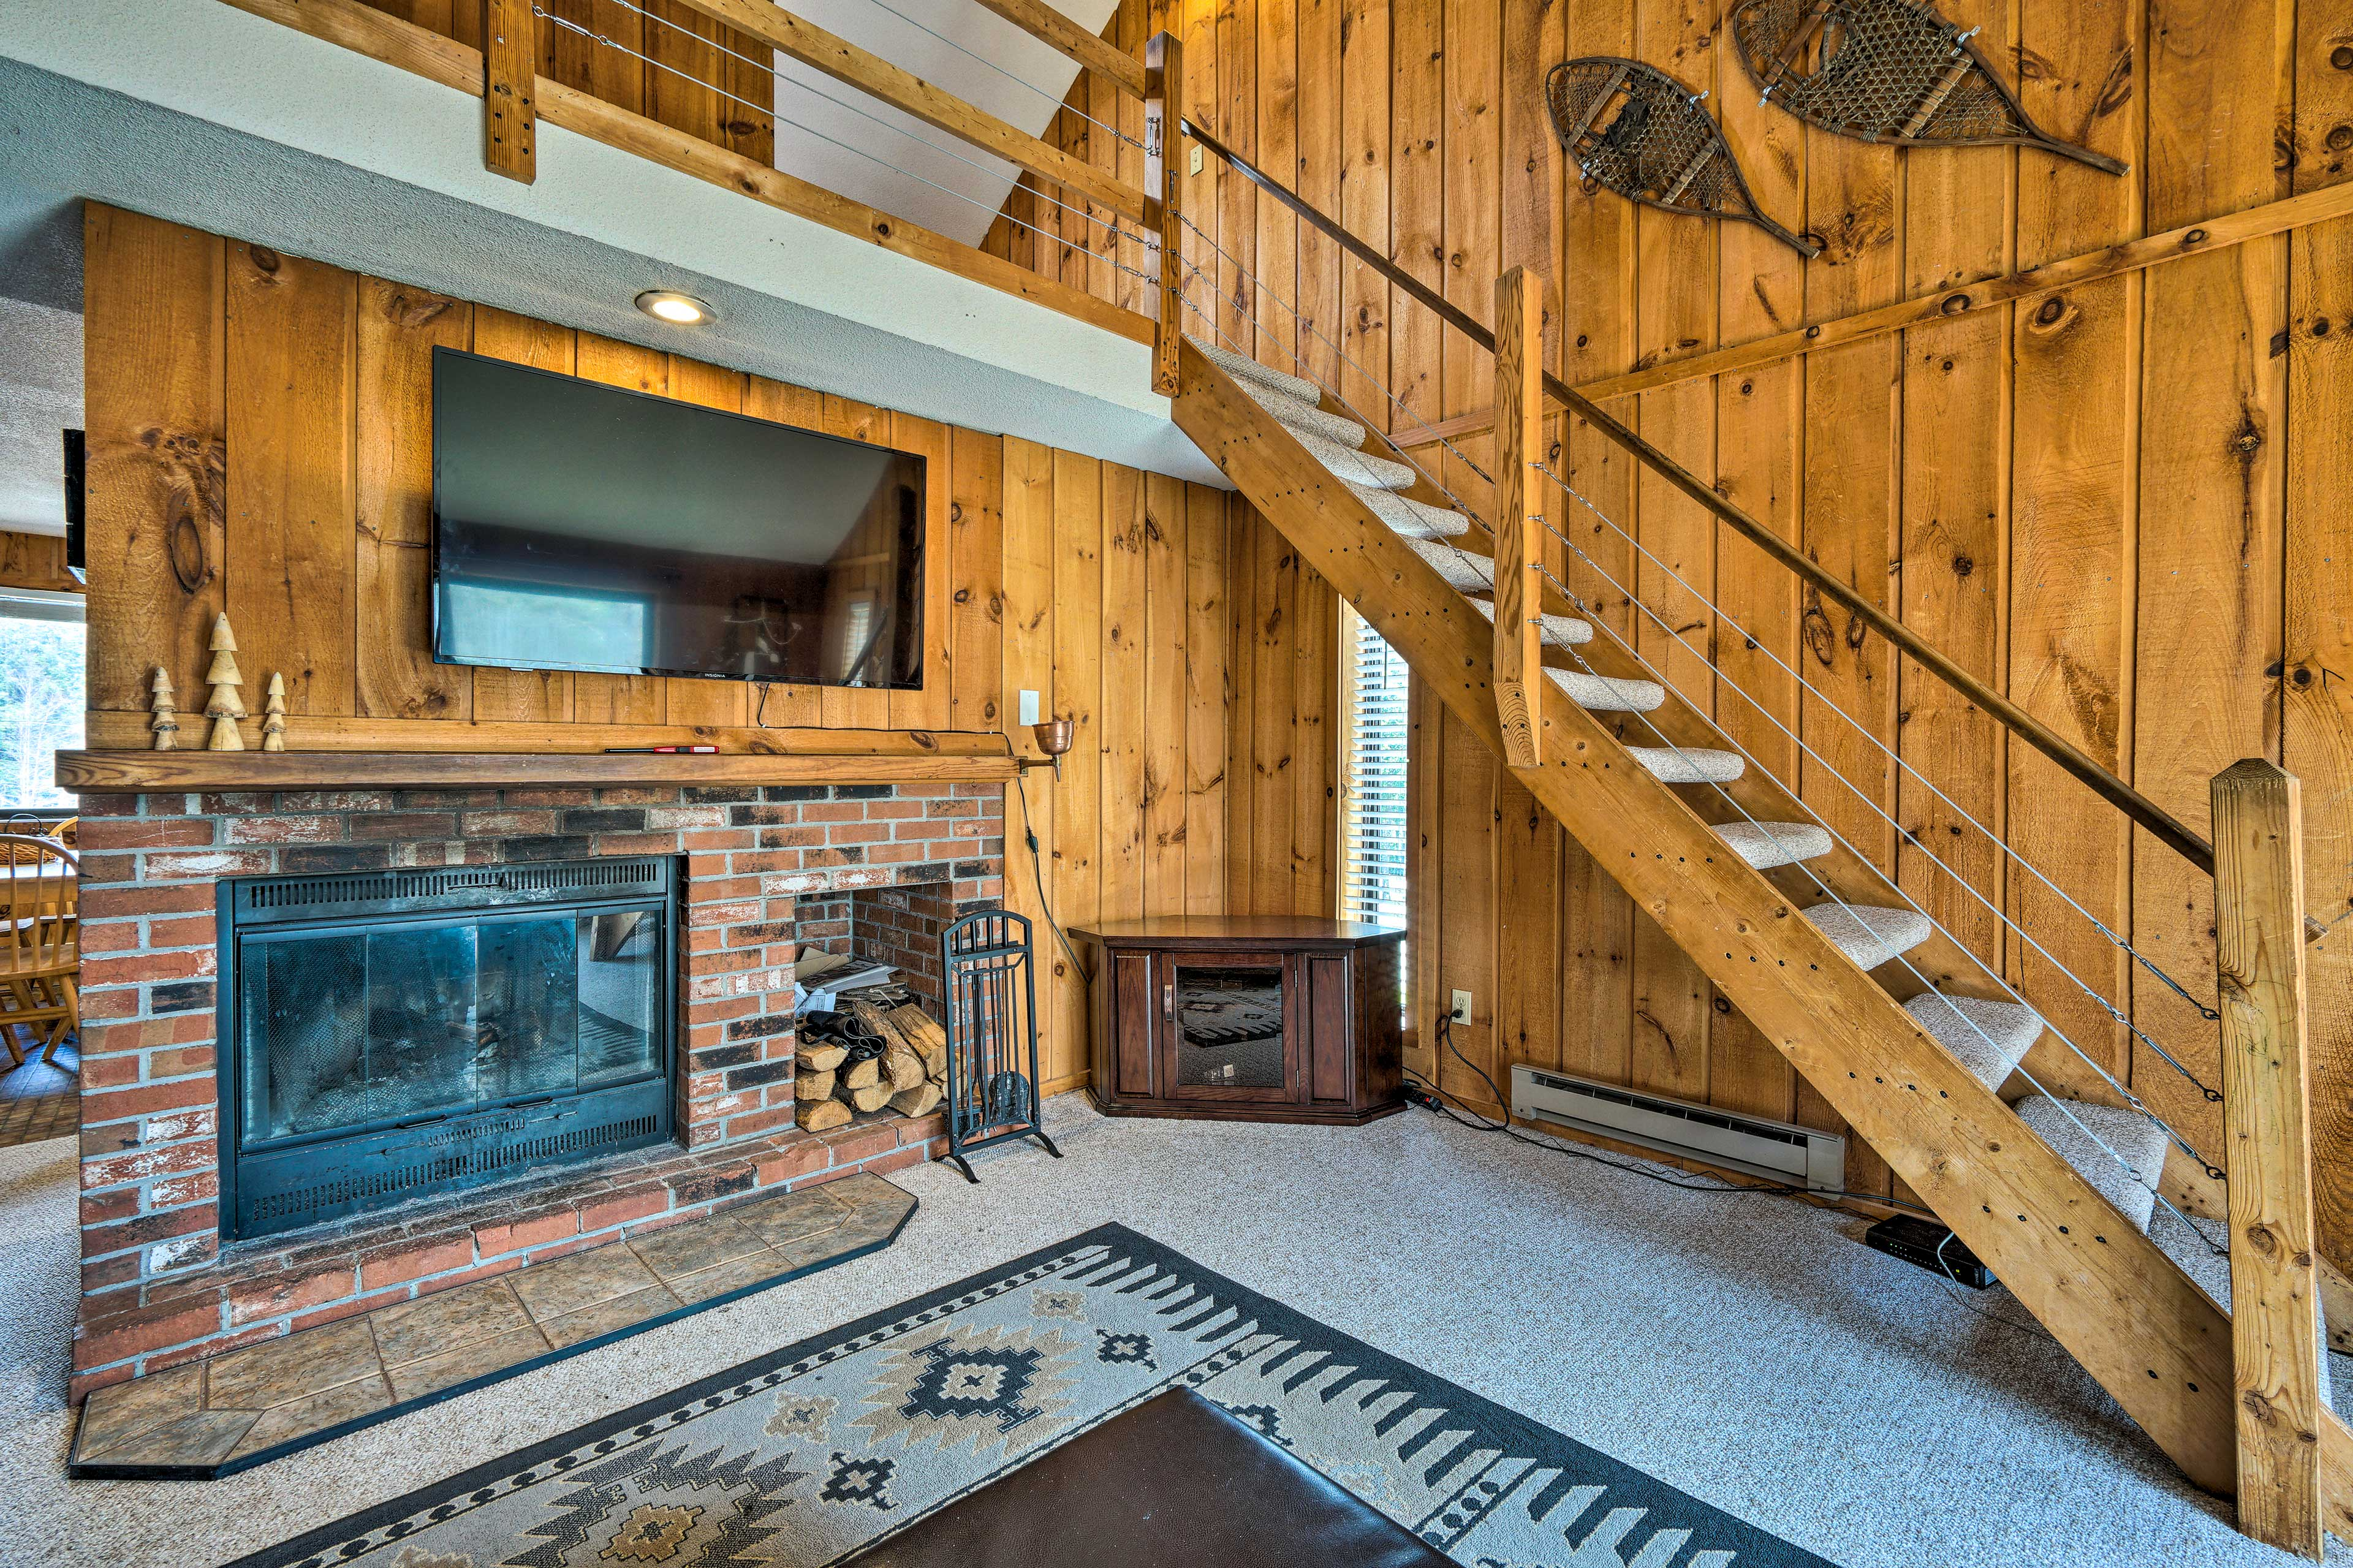 Dover Vacation Rental | 2BR | 2BA | 3 Stories | 1,200 Sq Ft | Stairs Required